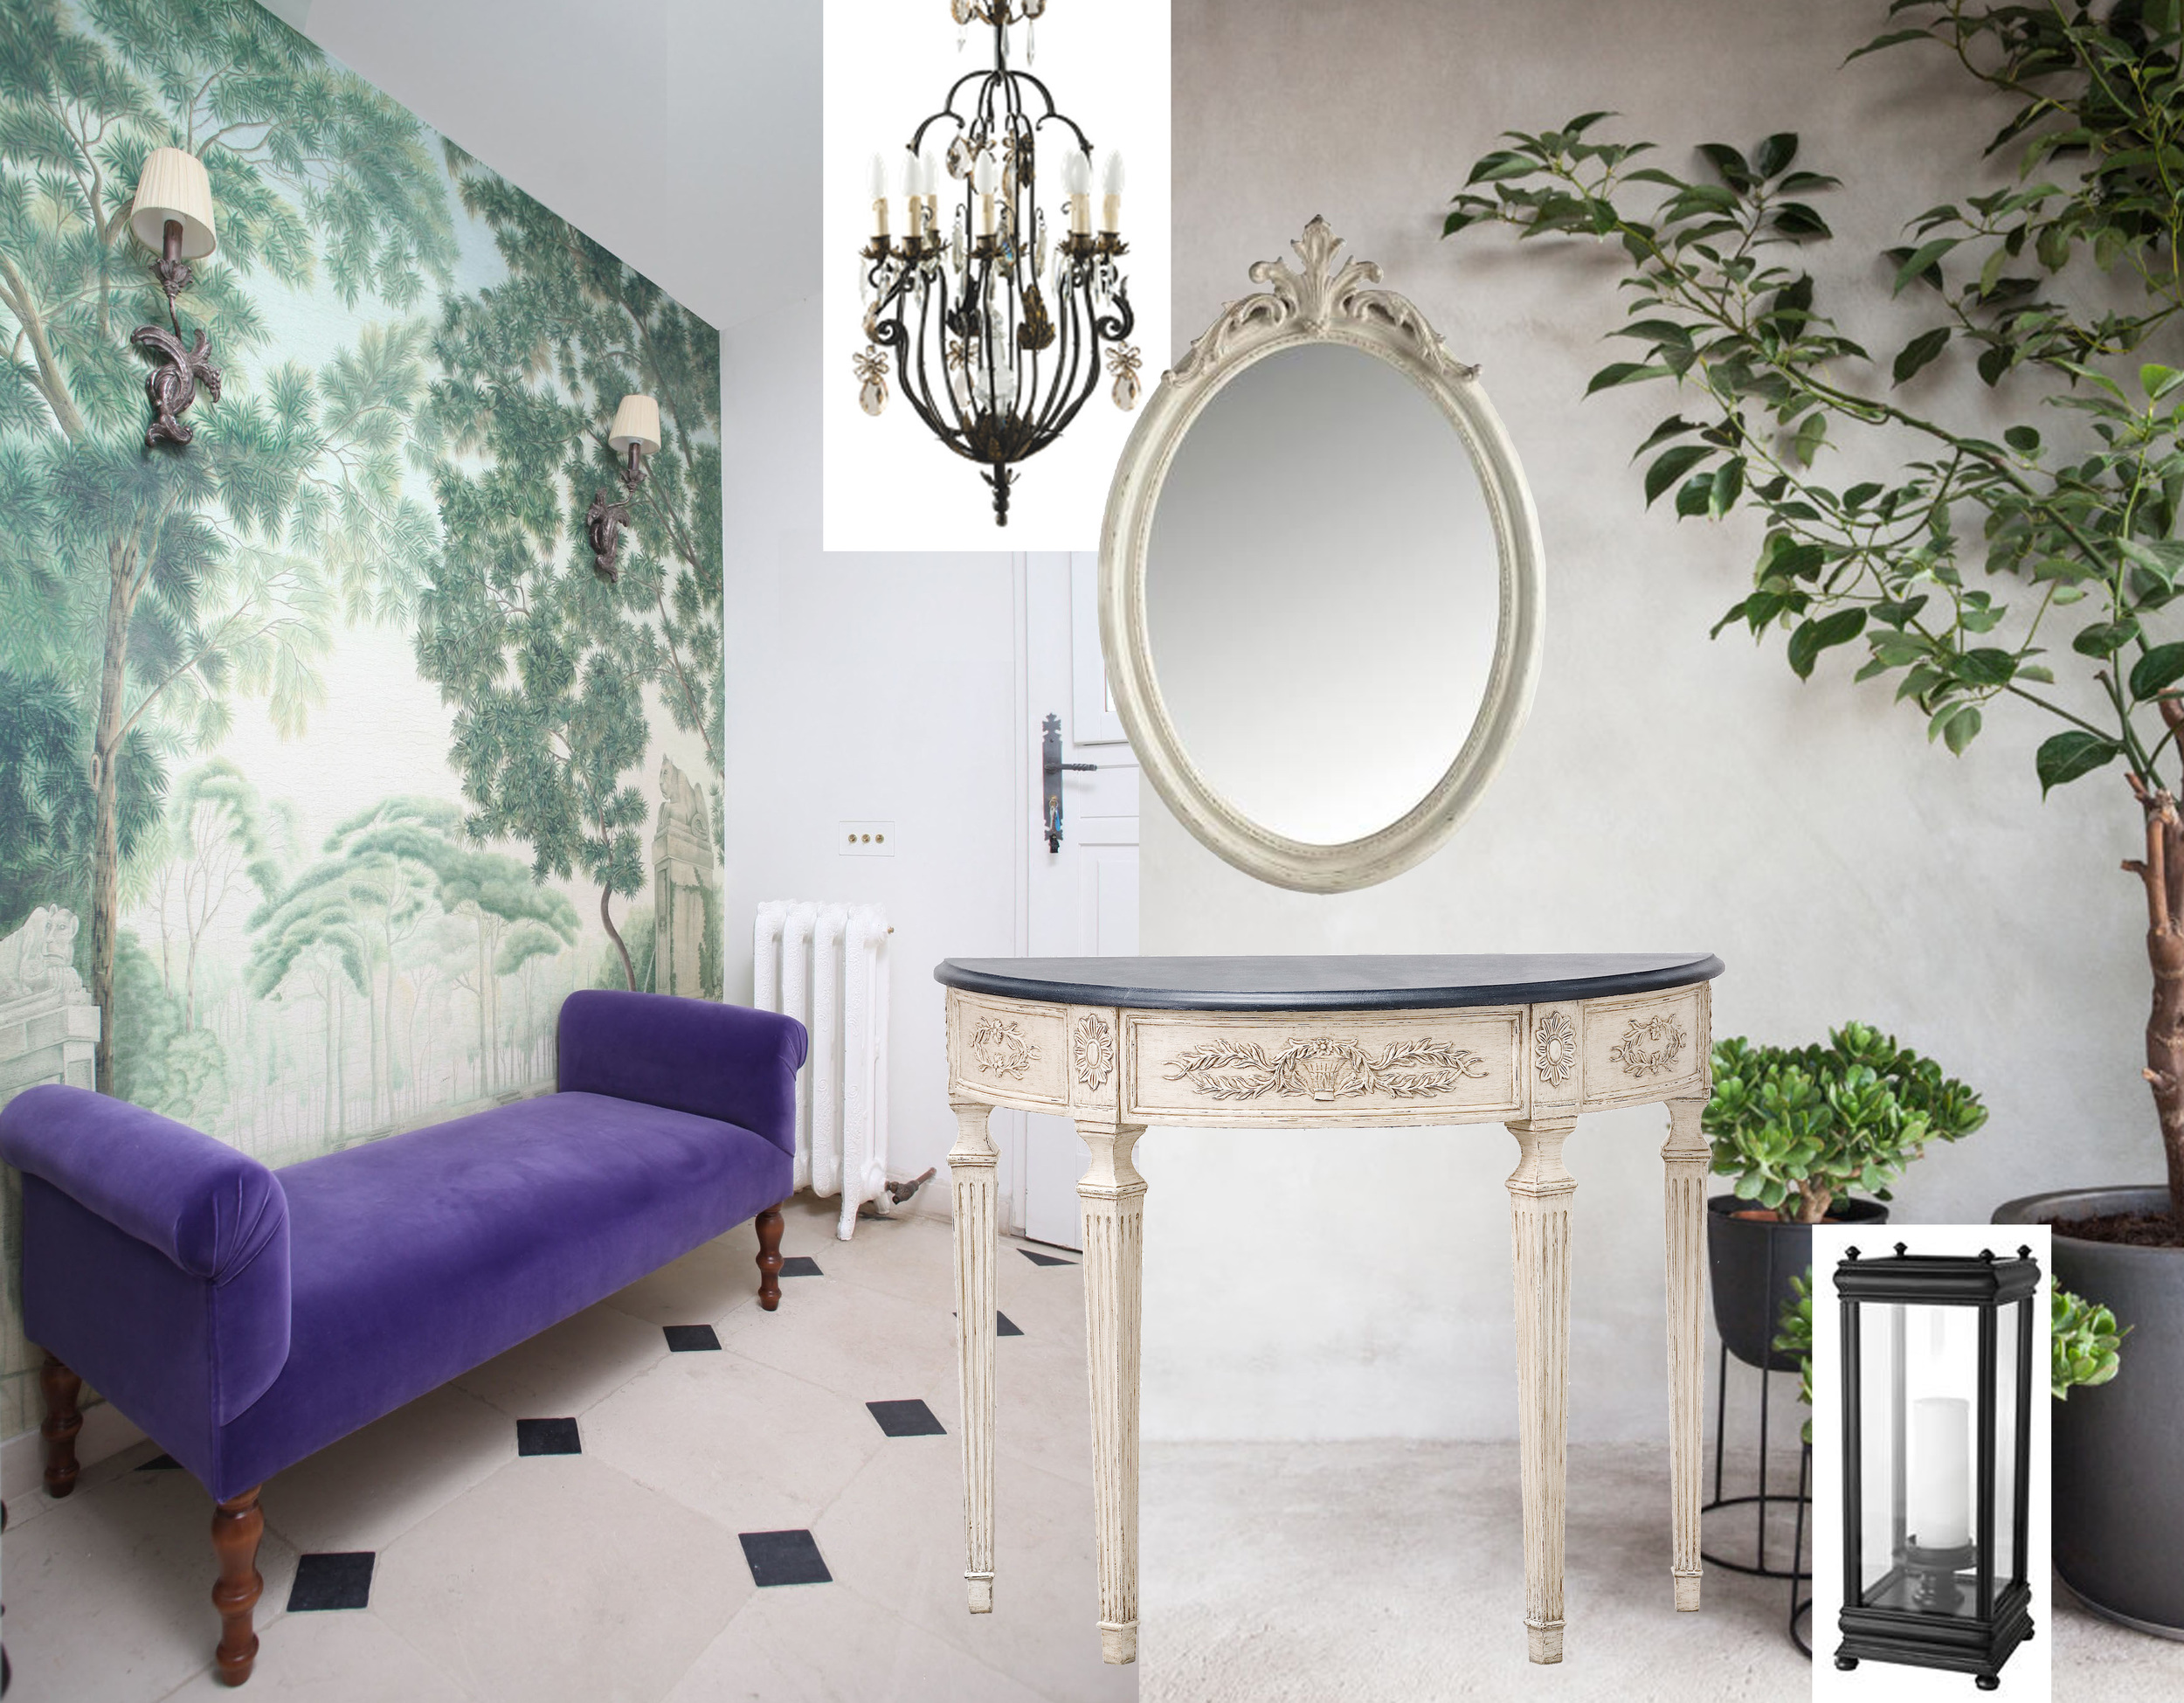 wallpaper Italian Panoramic  Iksel  - bench Rodin  Marie's Corner - wall scones  Judeco (picture  Casa Lux ) -hanging lamp Astrid  Mis en Demeure  - console Fontainebleau  Mis en Demeure  - mirror  Signature  - hurricane Prins Charles  Eichholtz  - picture with big plant found on  Pinterest